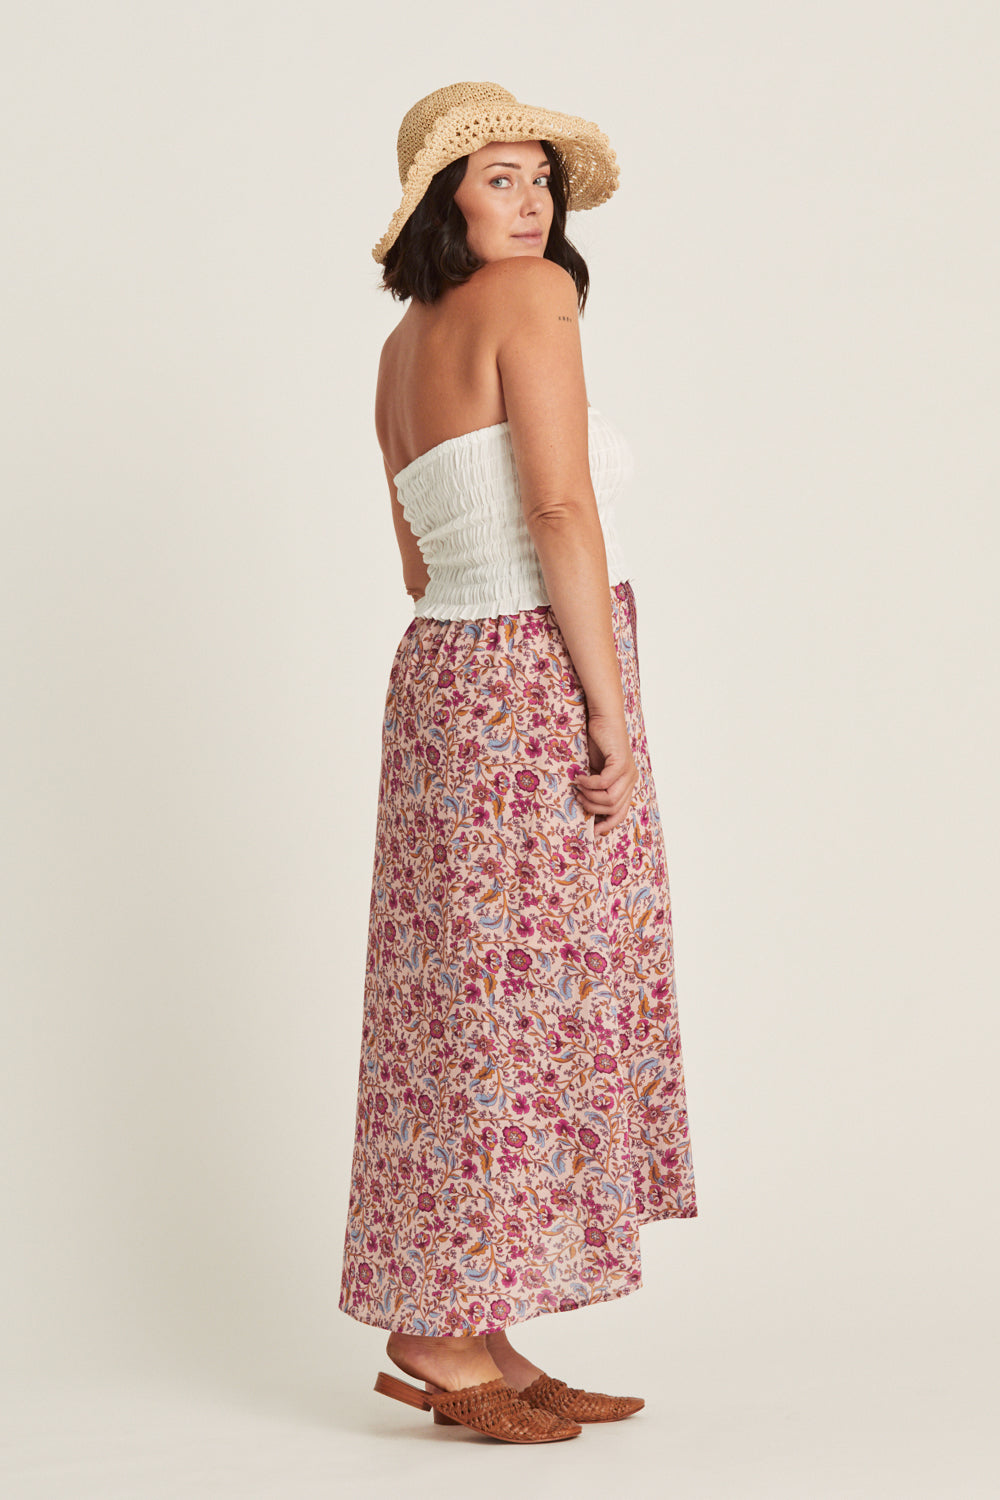 Daisy Chain Skirt in Candy